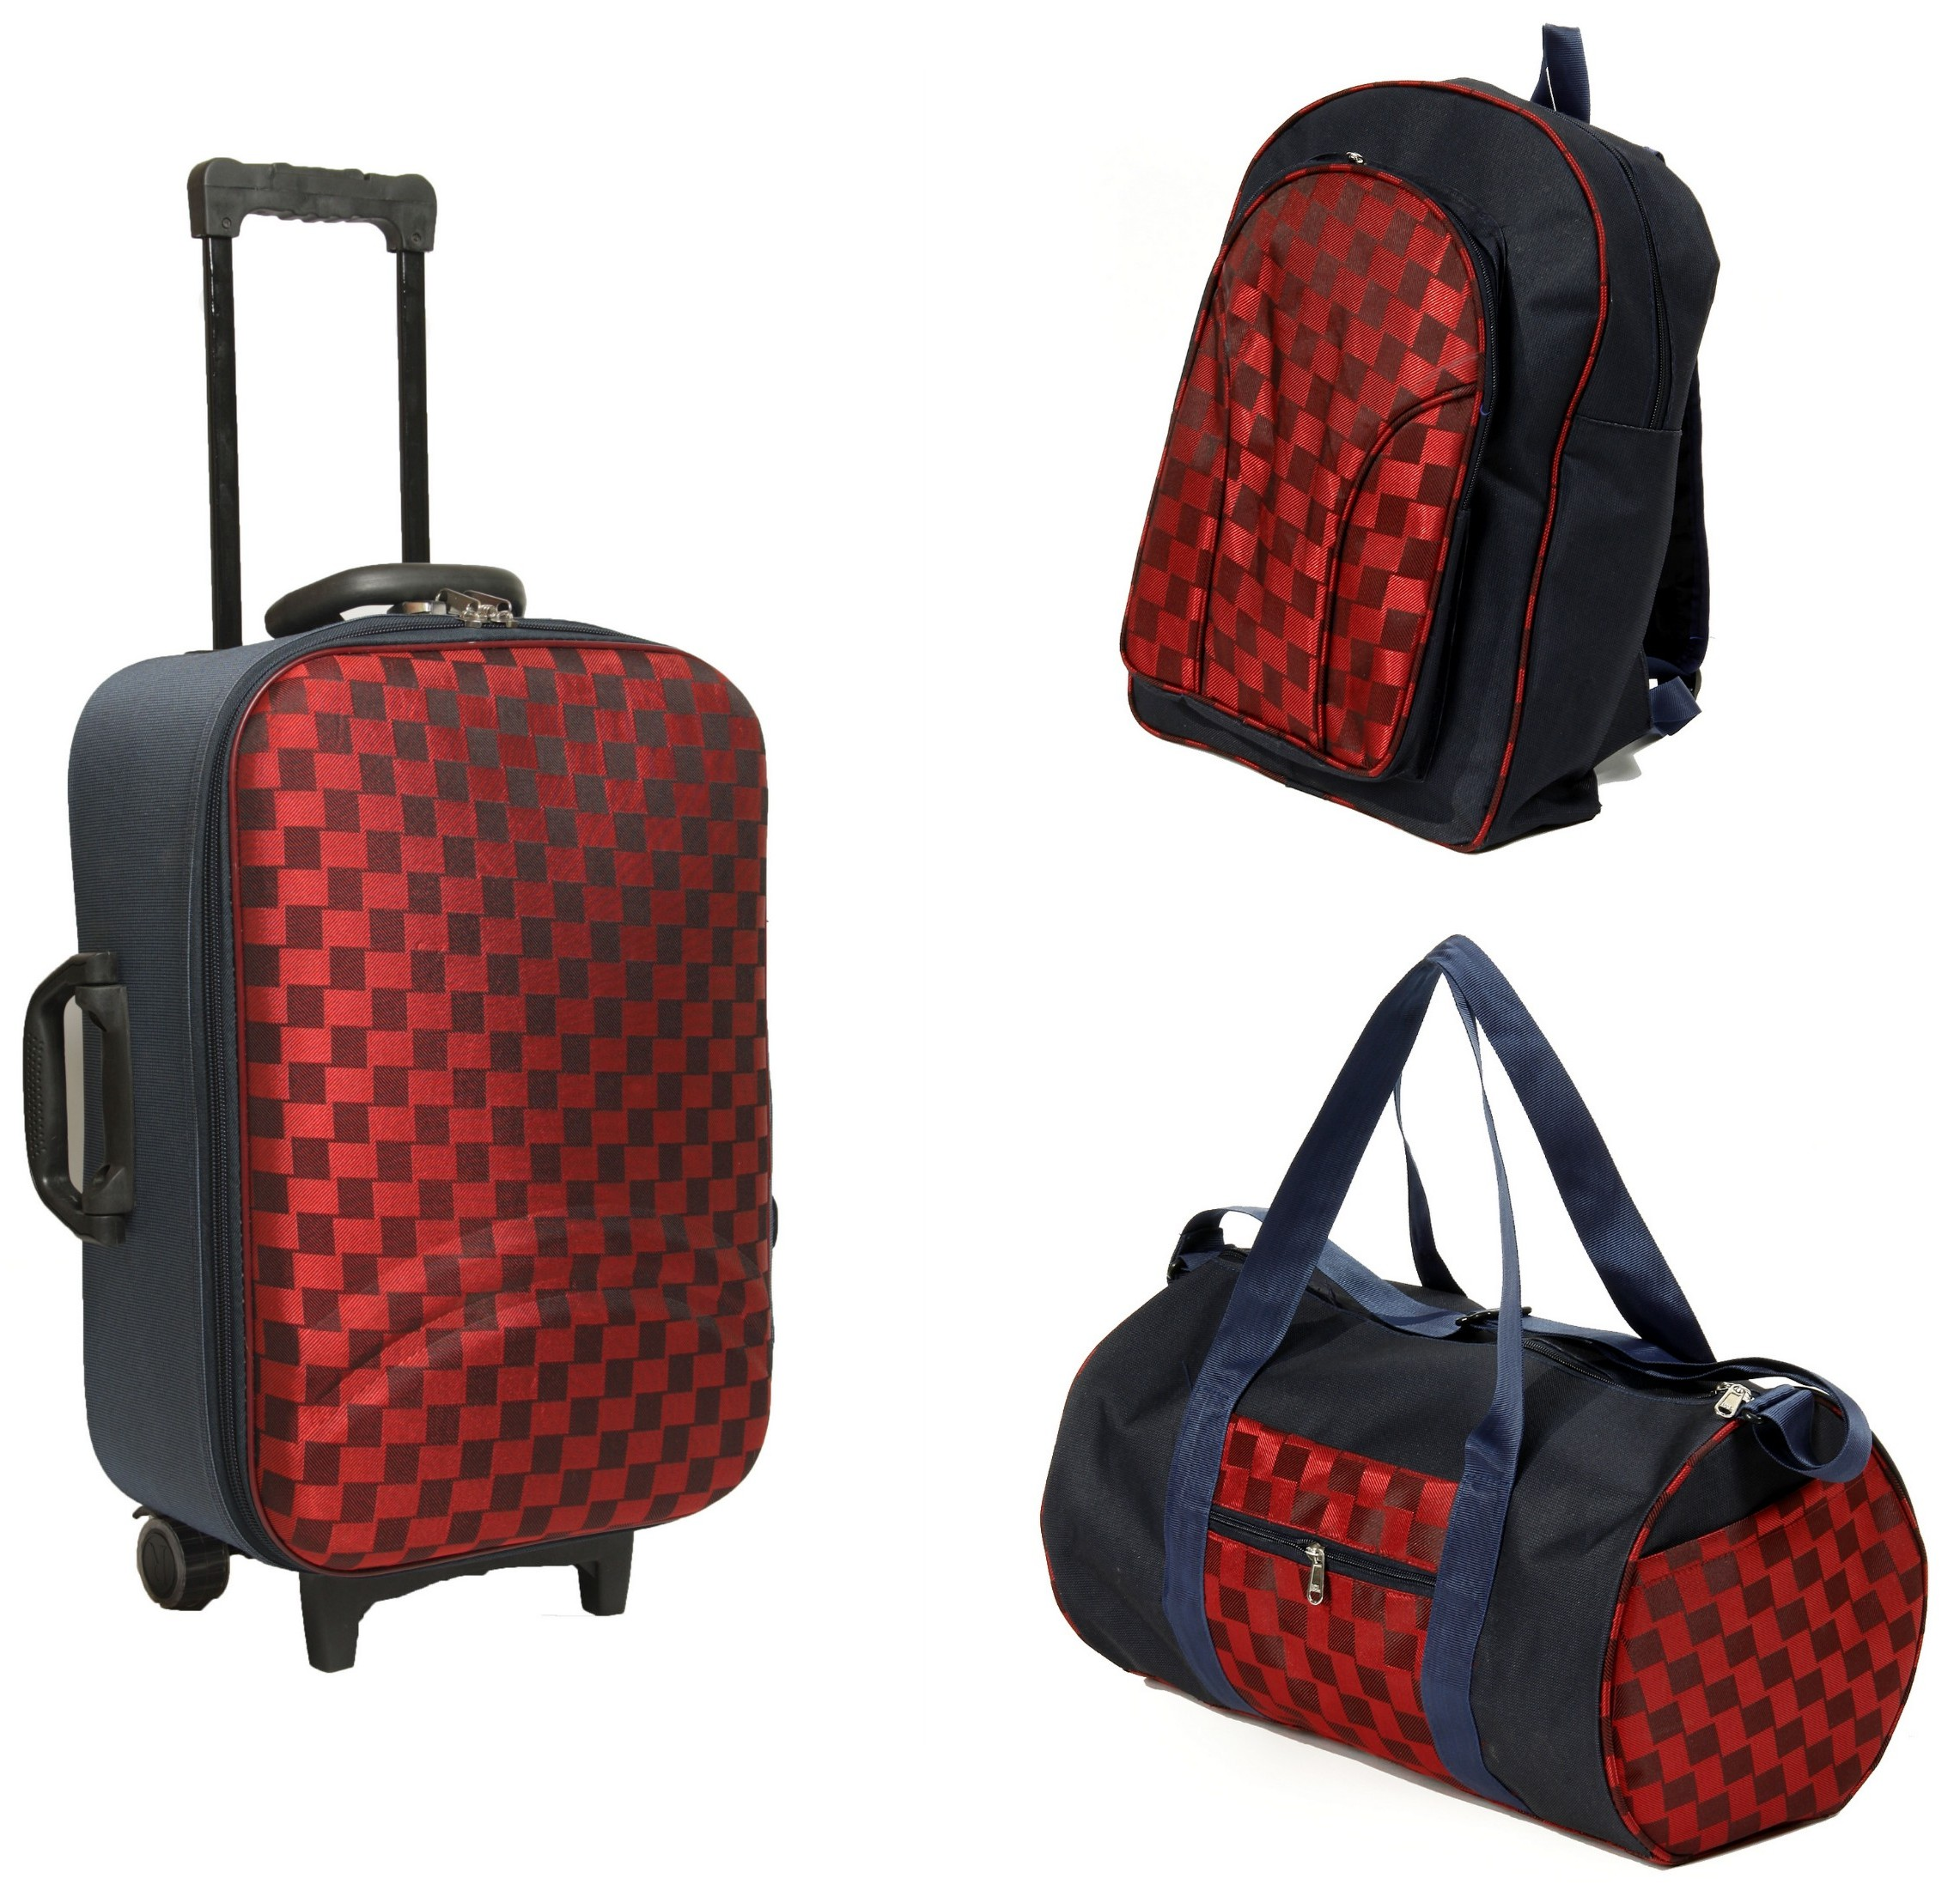 Gym Bag Flipkart: Fidato Suitcase Trolley, Backpack And Gym Bag Combo